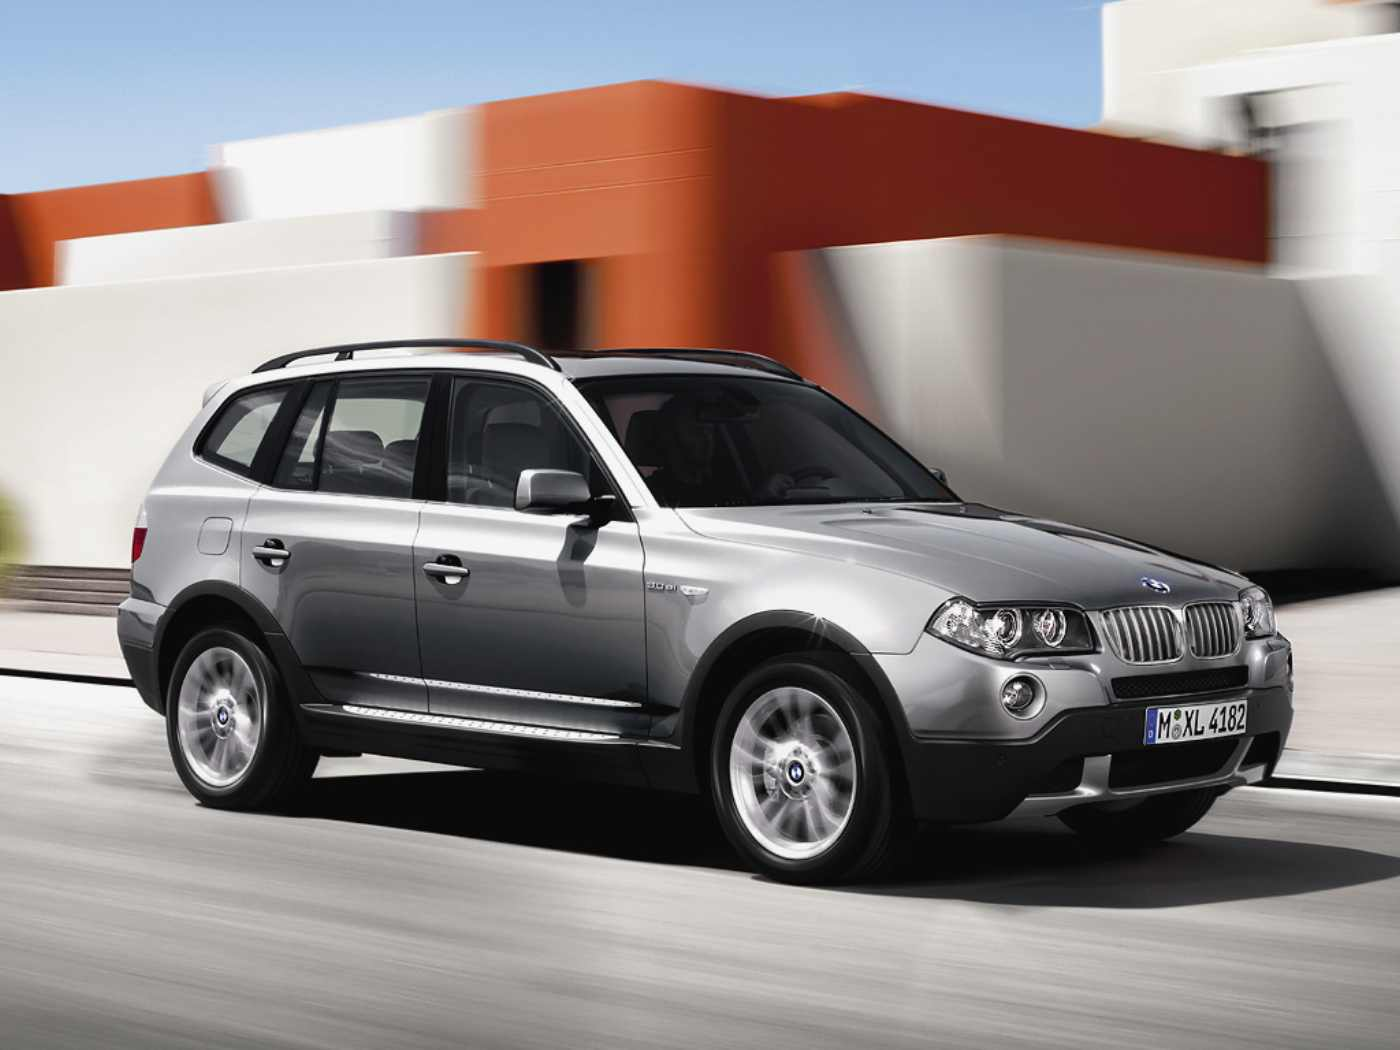 2009 Bmw X3 Information And Photos Zombiedrive border=